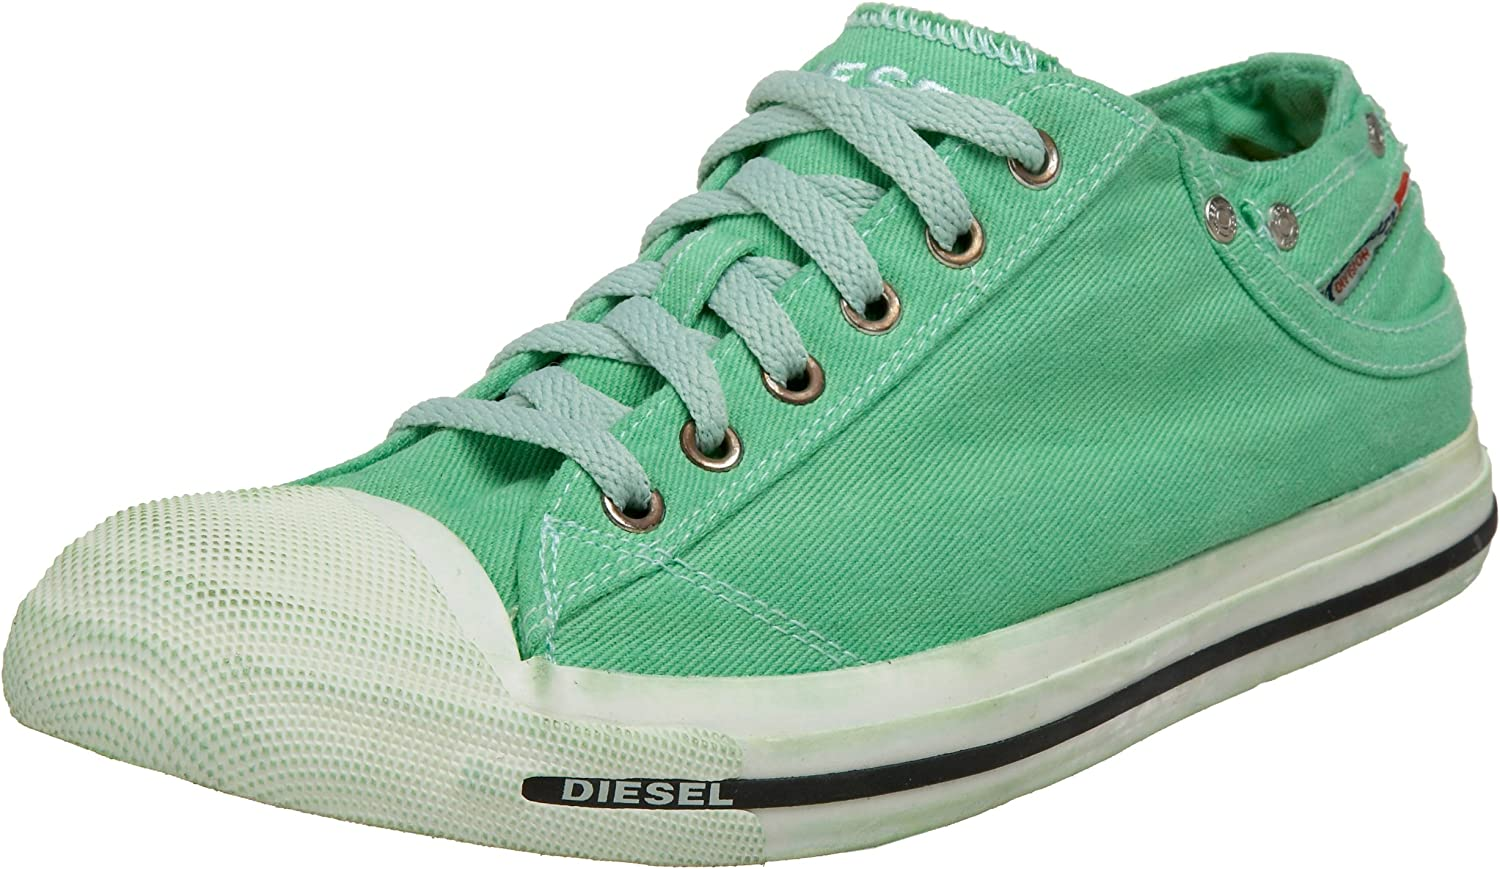 Milwaukee Mall Diesel Men's Exposure Today's only L Lace-Up